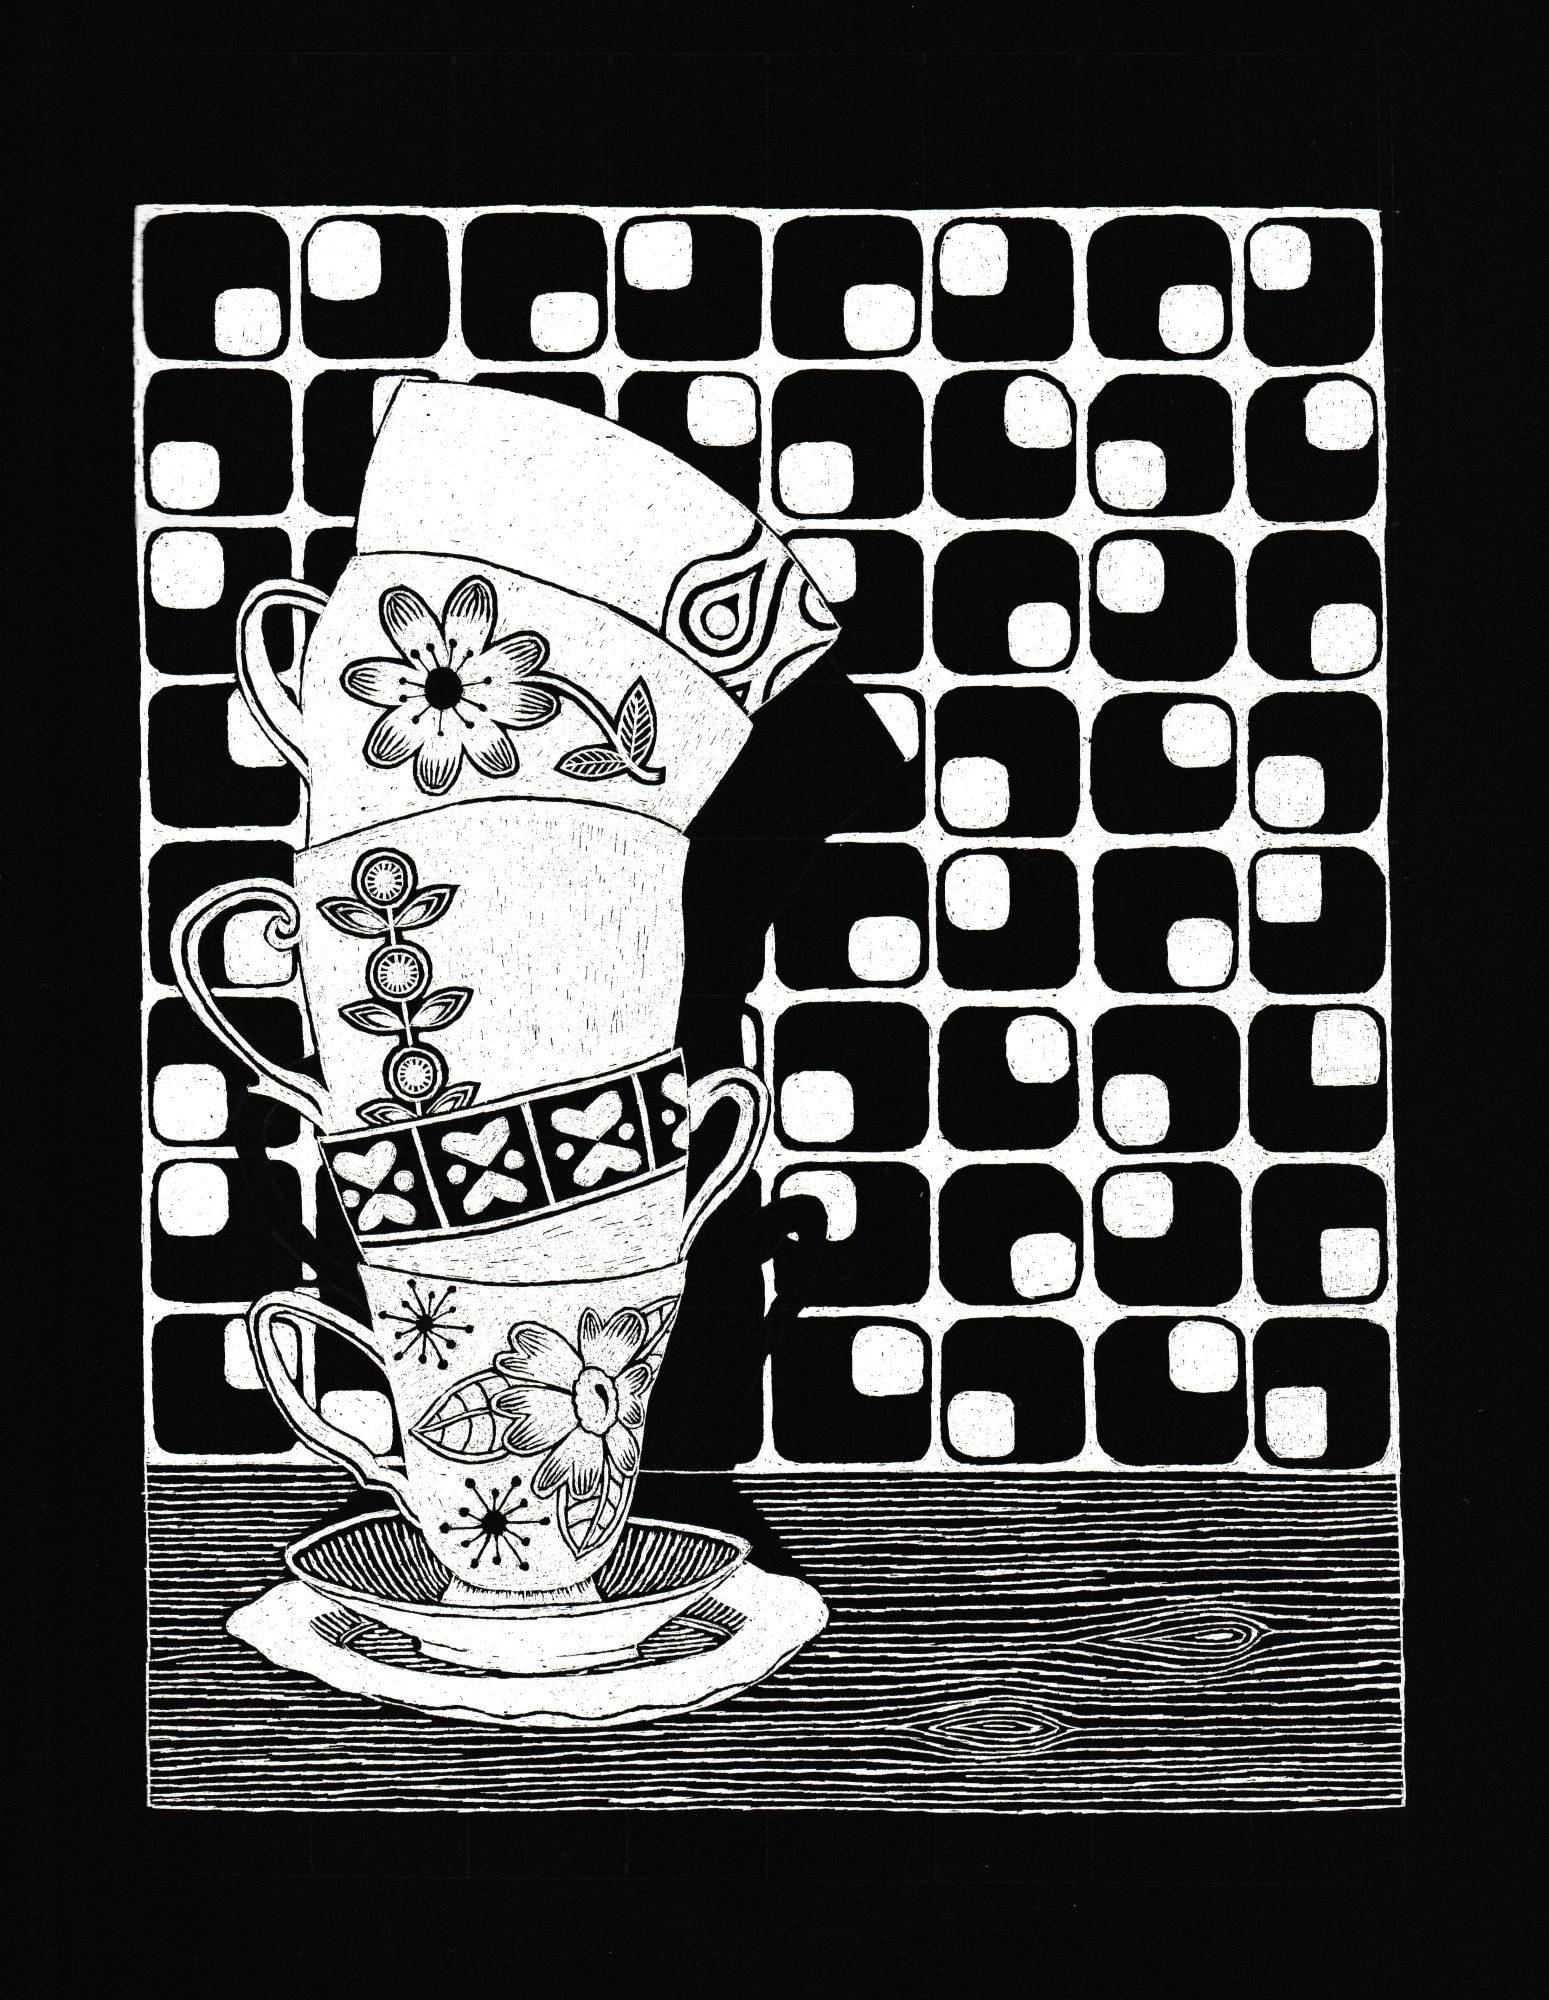 sold-teacups-scanned-high-res